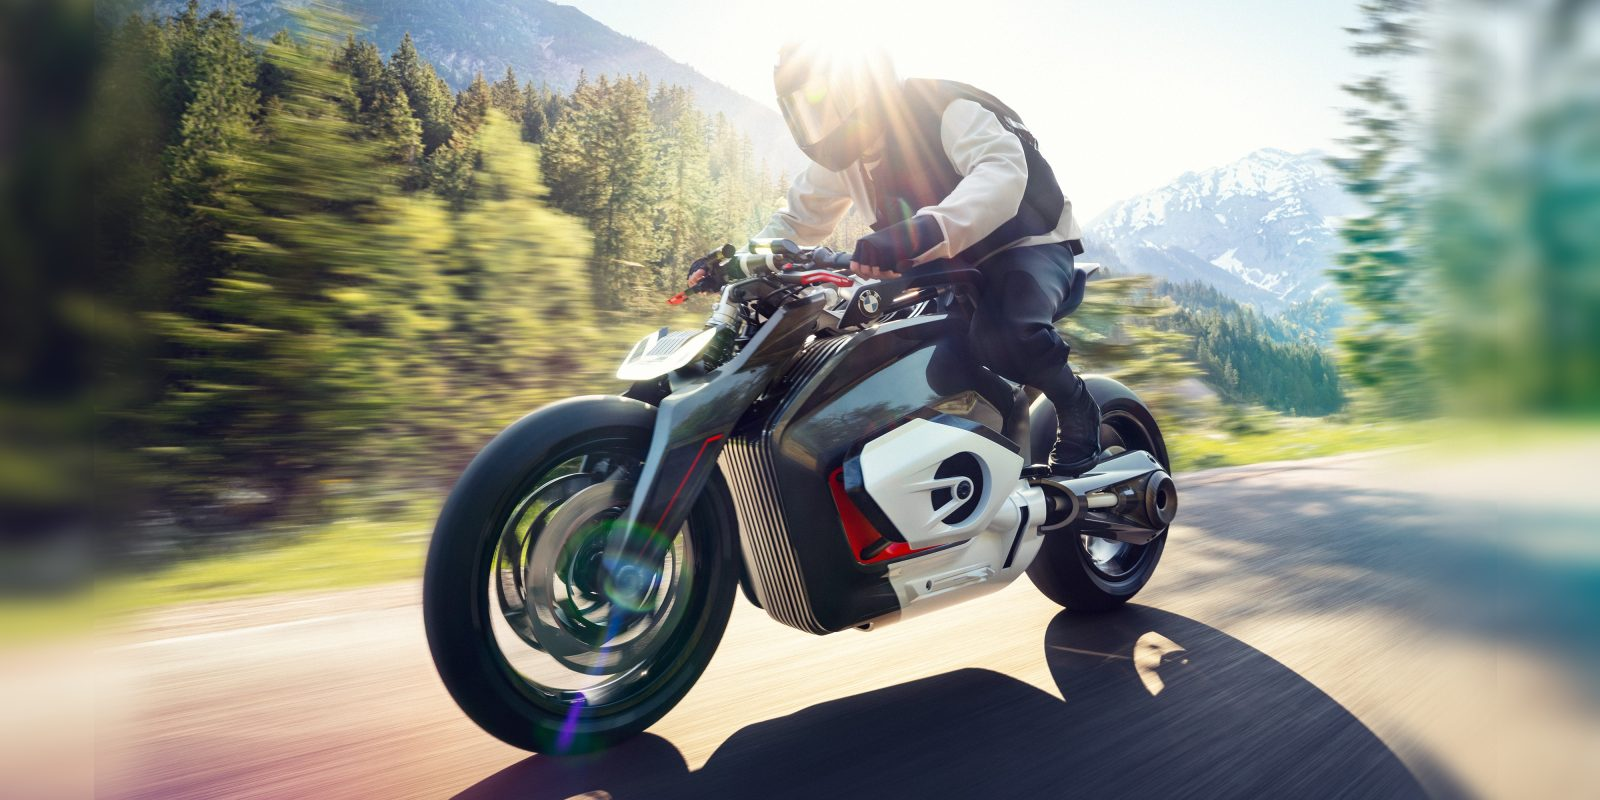 Bmw Unveils Its Latest Electric Motorcycle Concept The Vision Dc